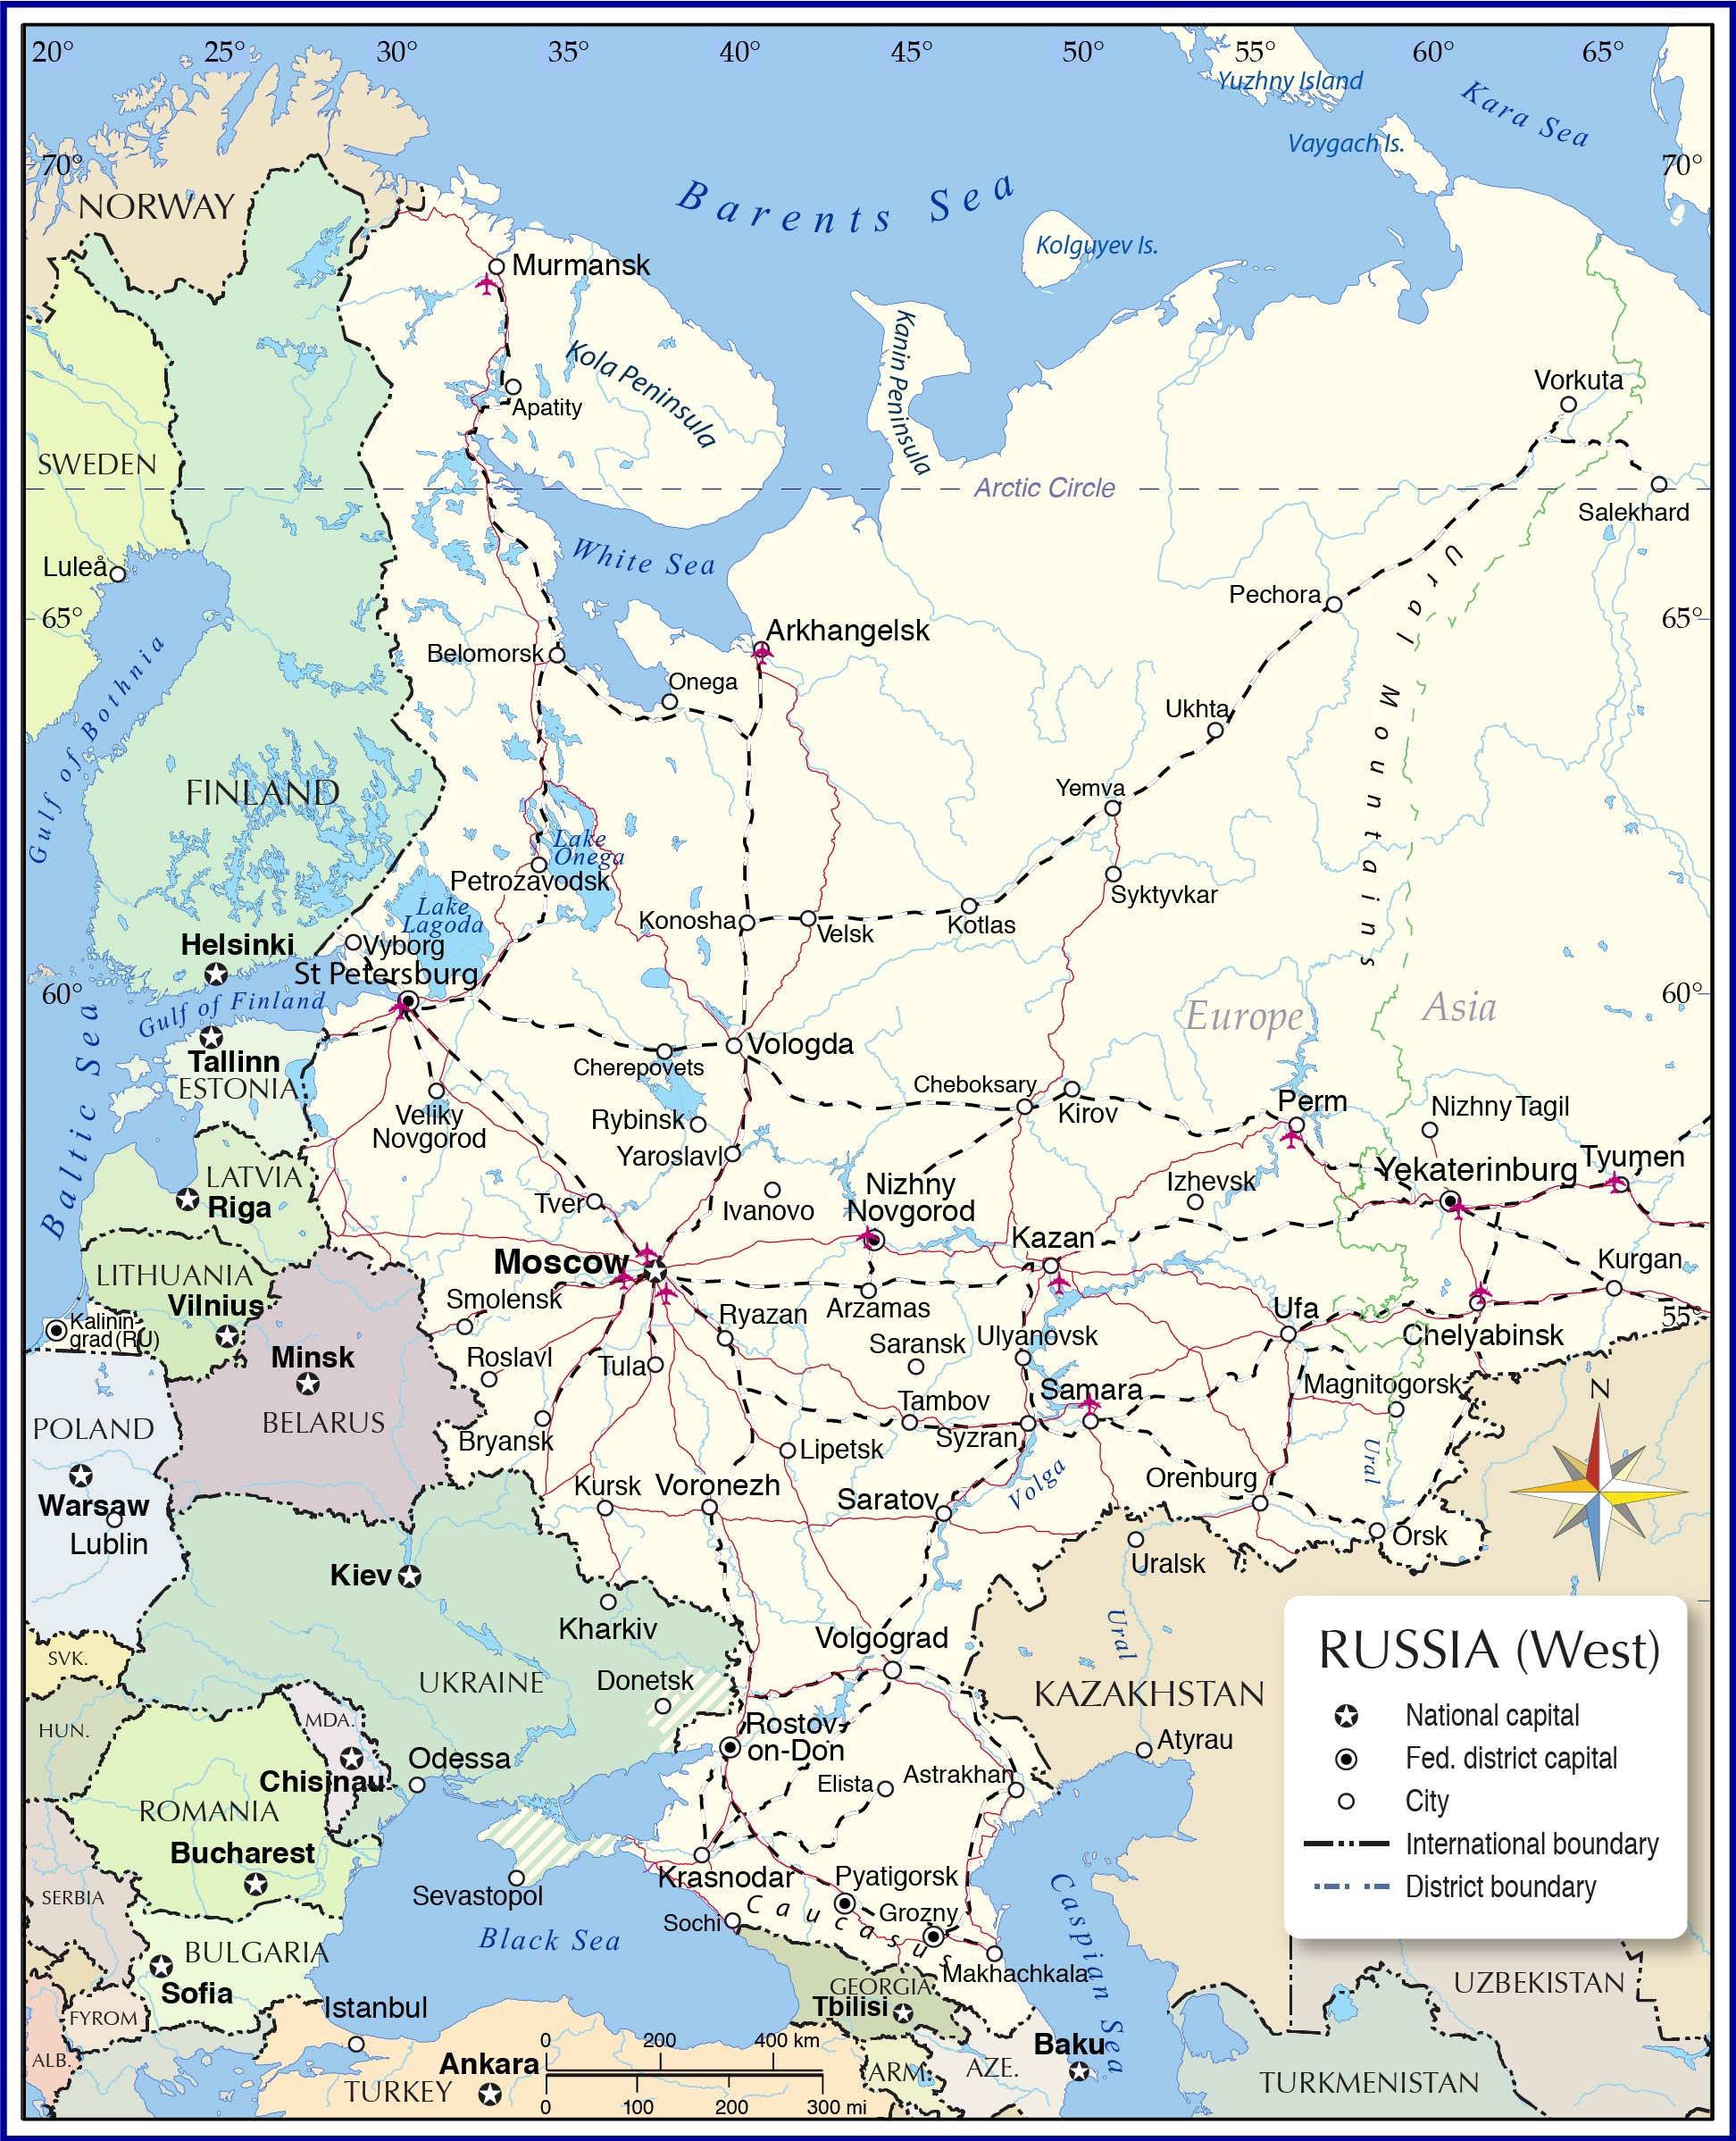 Europe Airport Map : europe, airport, European, Russia, Nations, Online, Project